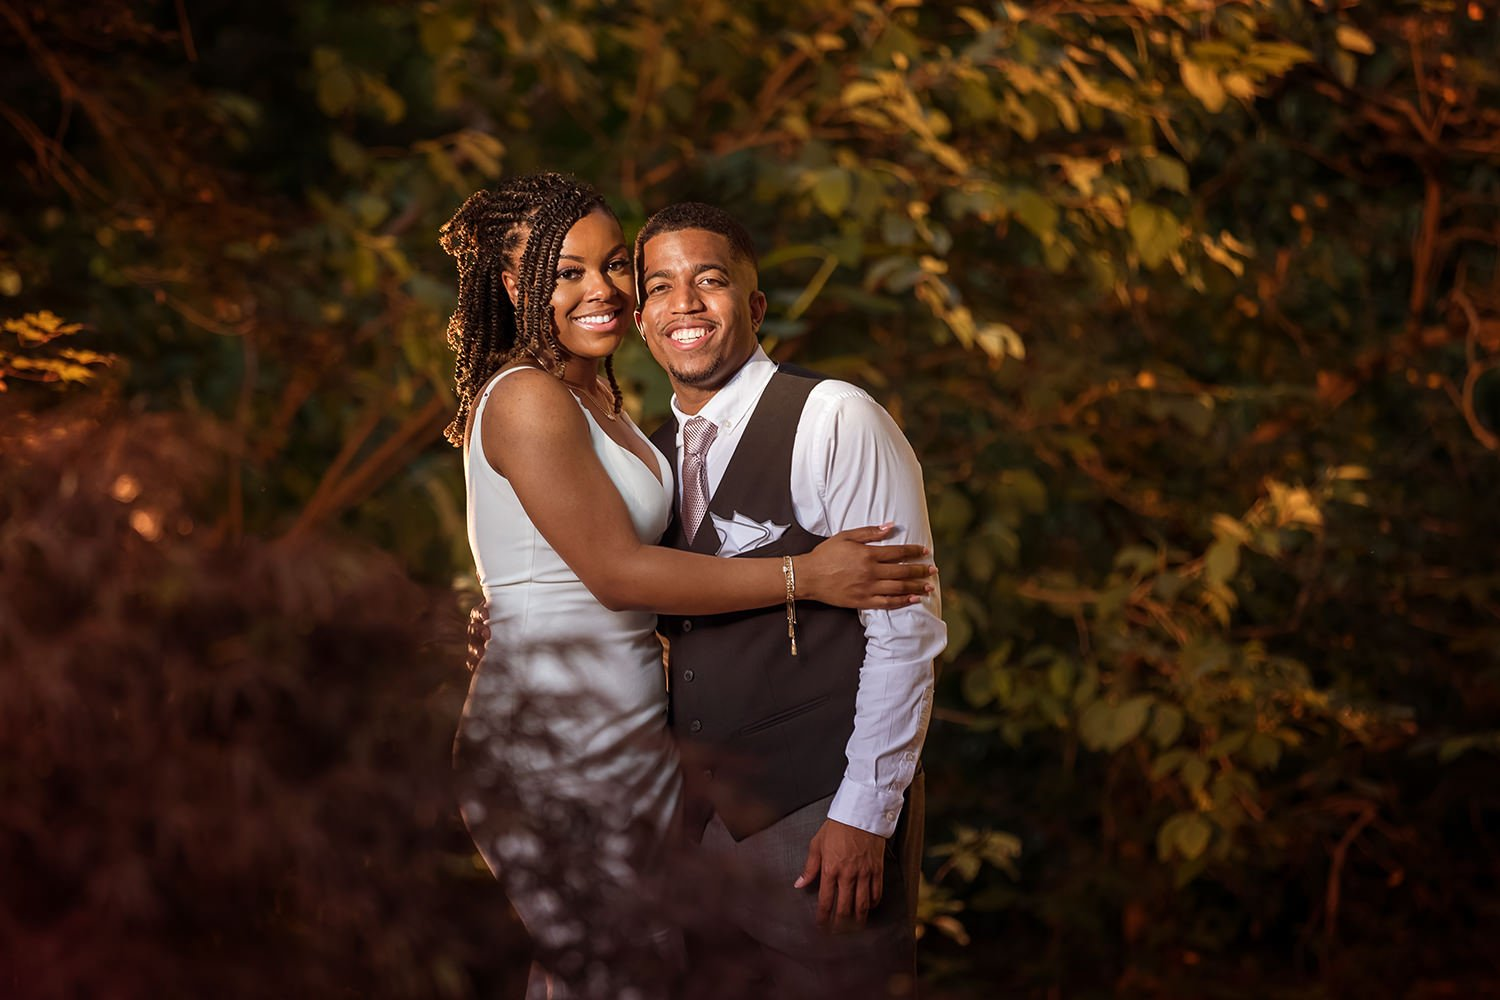 engagements - Raleigh-Wedding-Photographer-couple-smiling.jpg | Raleigh wedding photographer